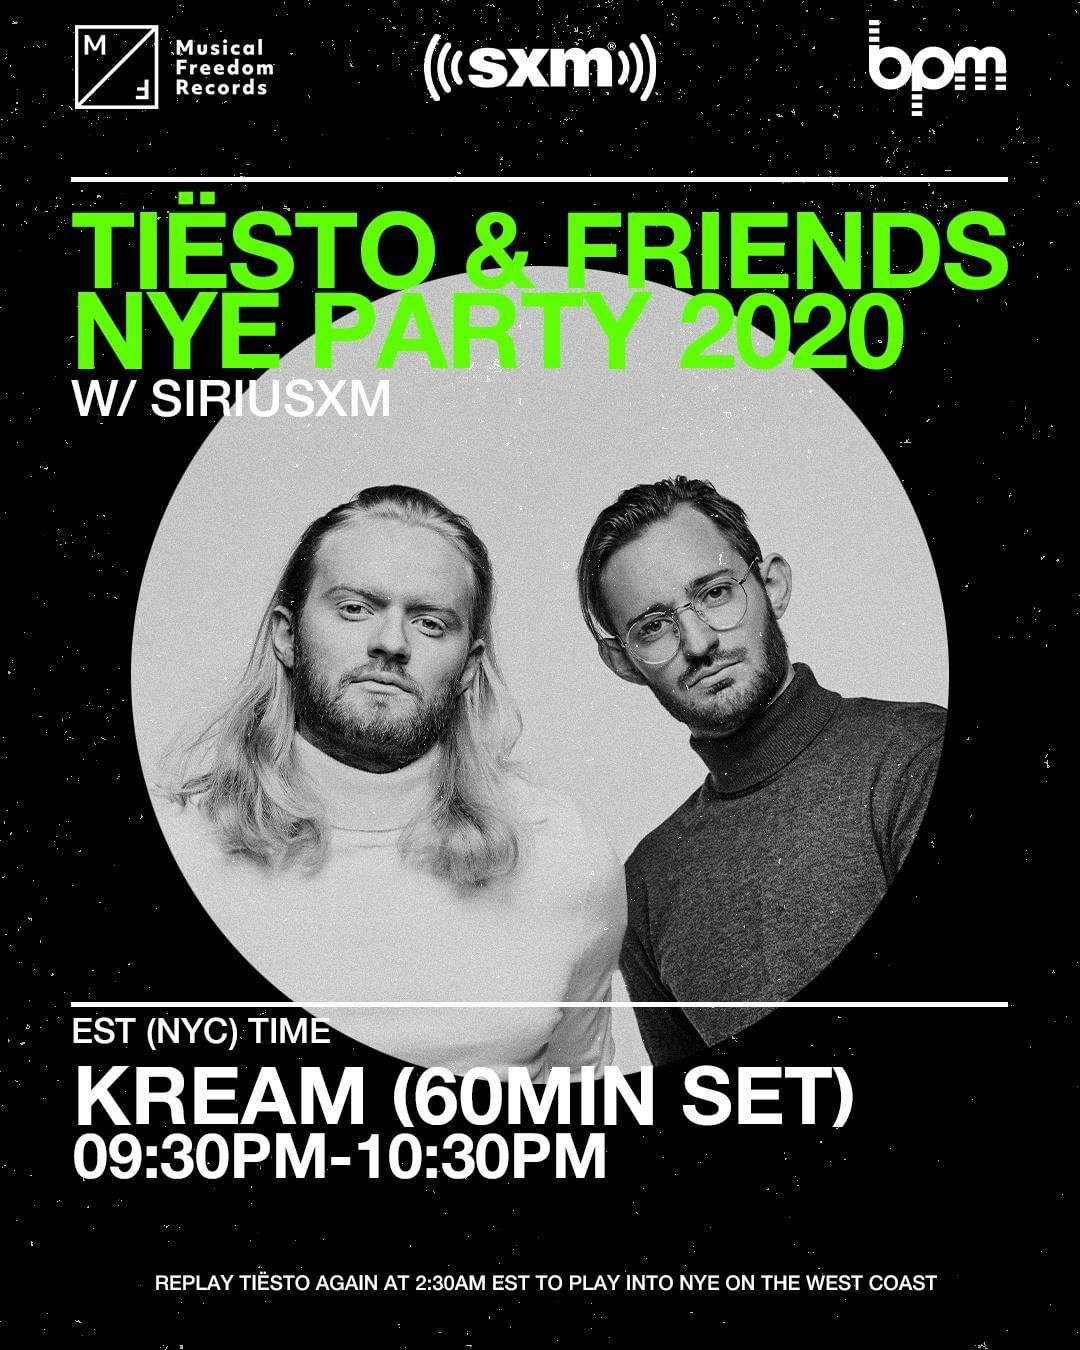 Tiësto and friends, New Year 2020 on Sirius Xm, kream